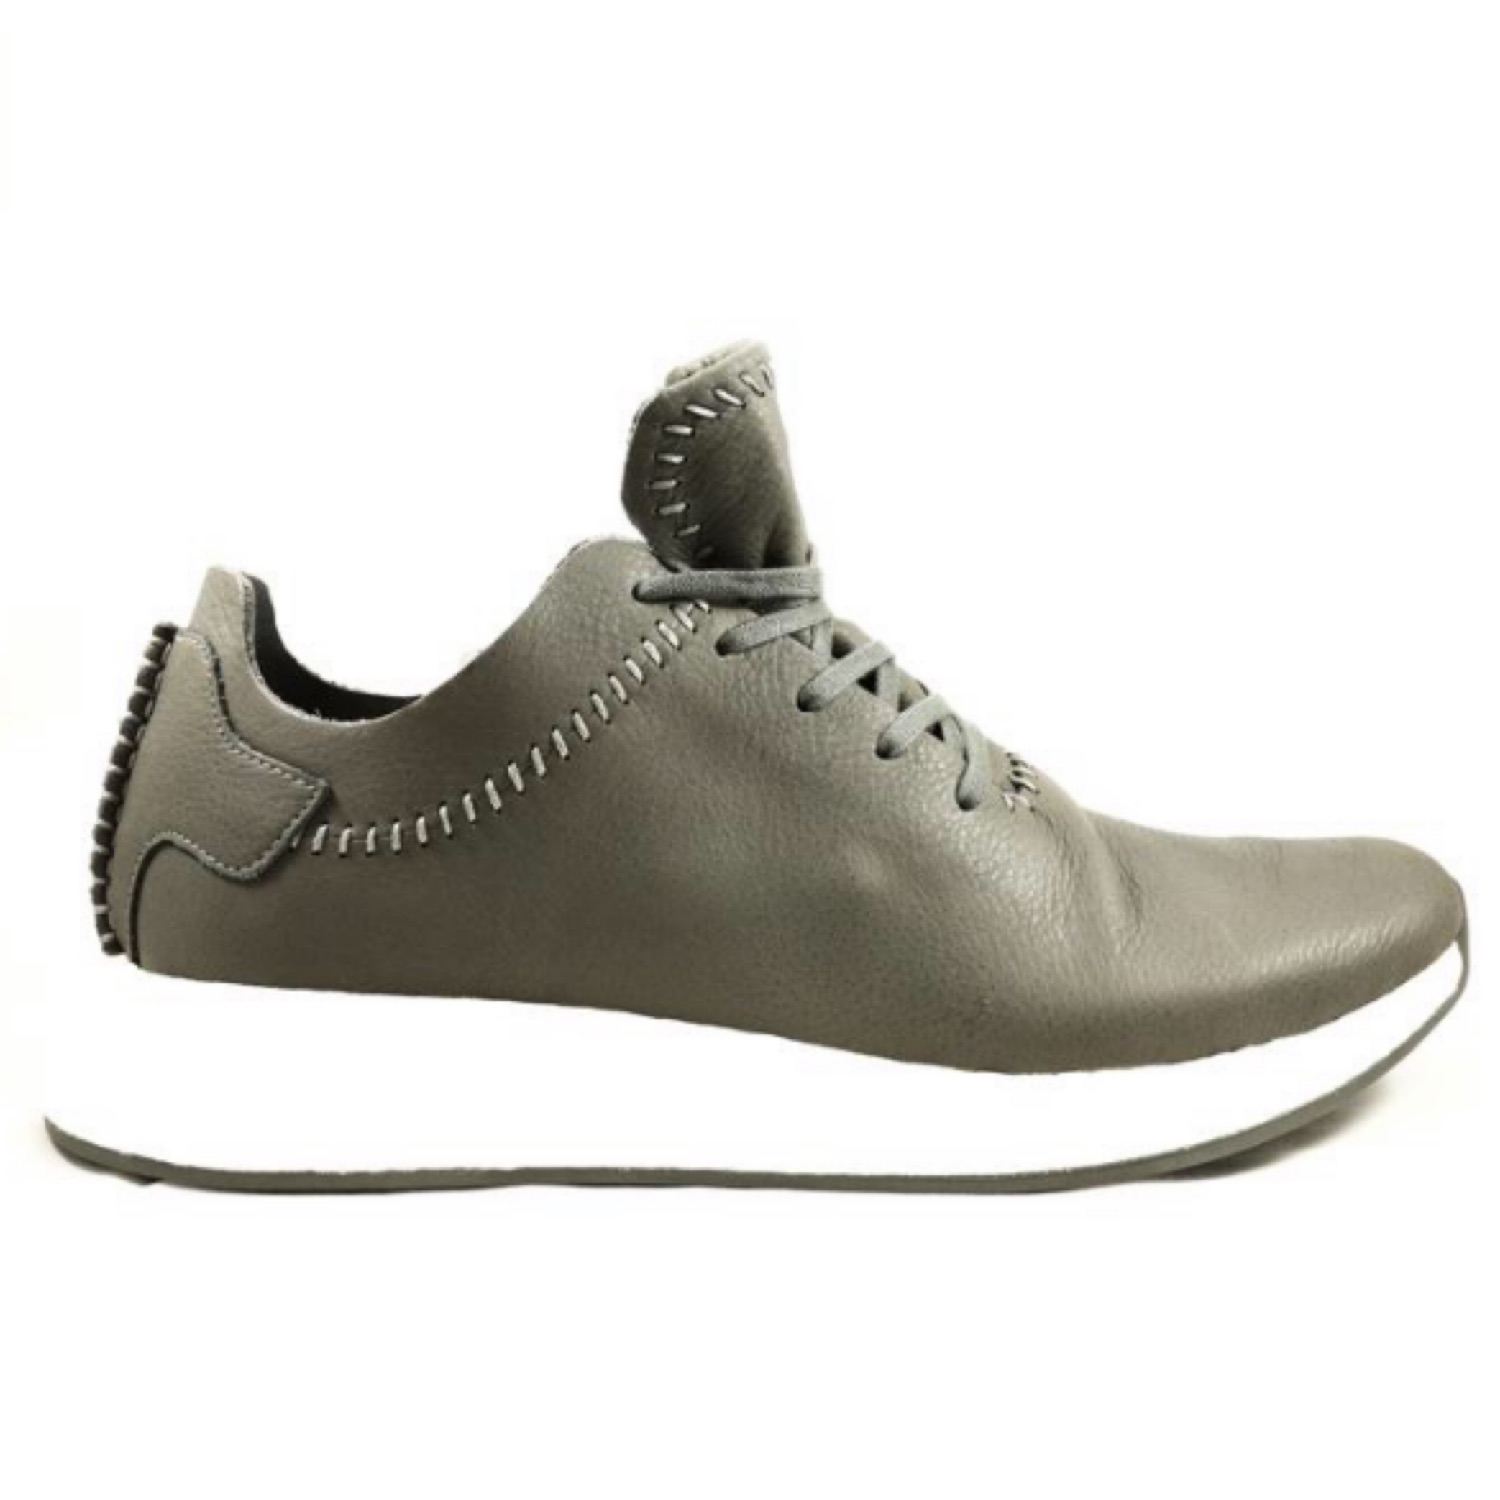 new style 648dd efb5c Adidas Wings + Horns Nmd R2 Ash Leather